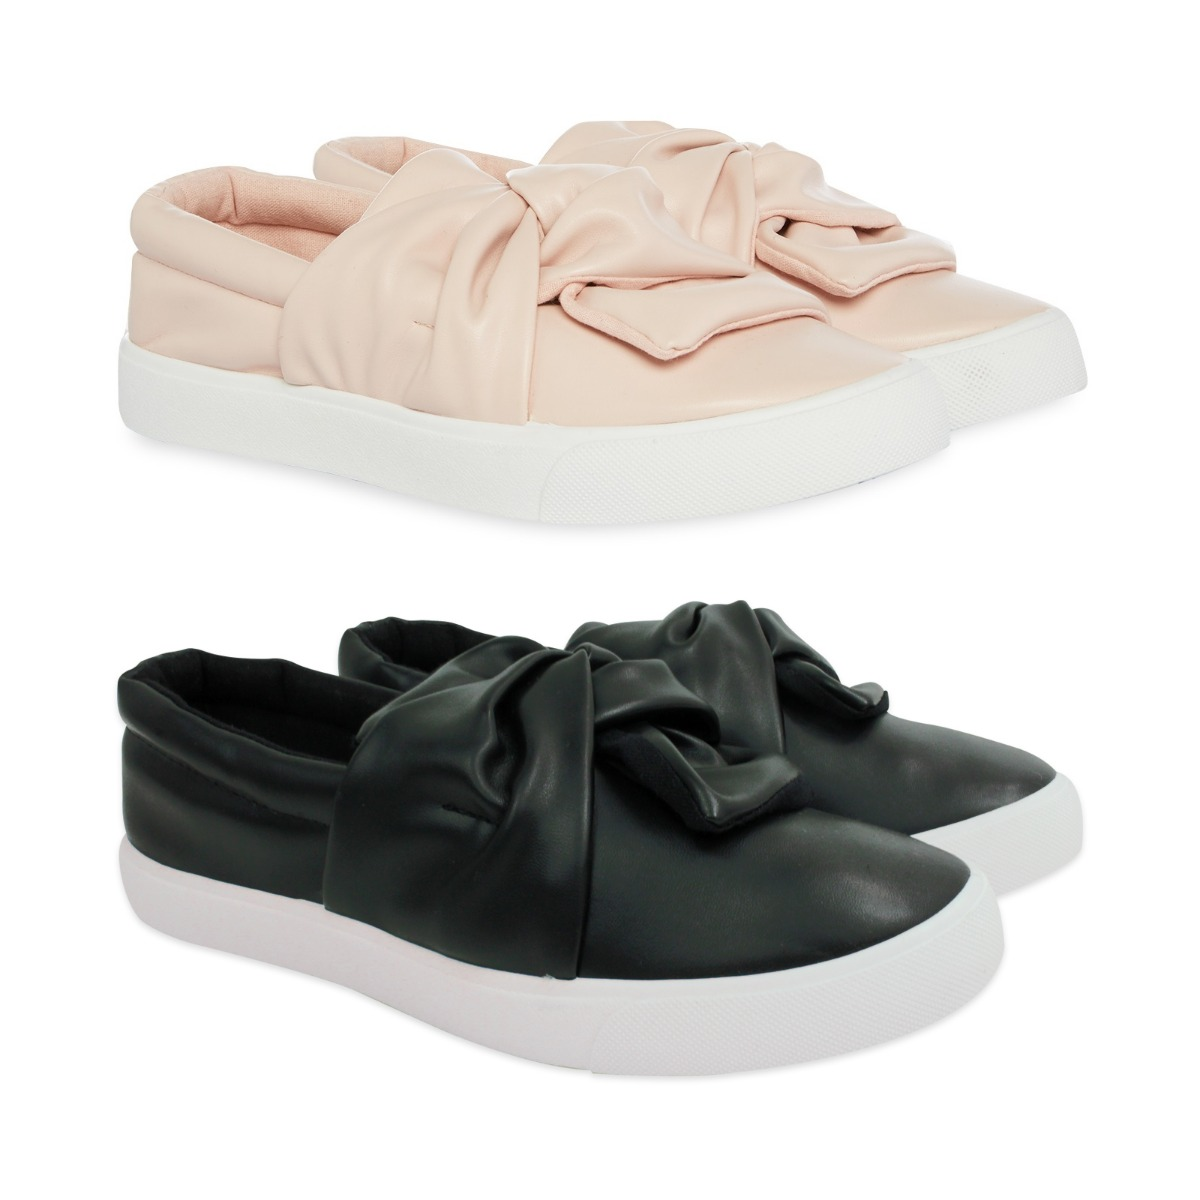 c8f567078a ... Girls pink pumps and girls black pumps with bow detail to the front  available in sizes